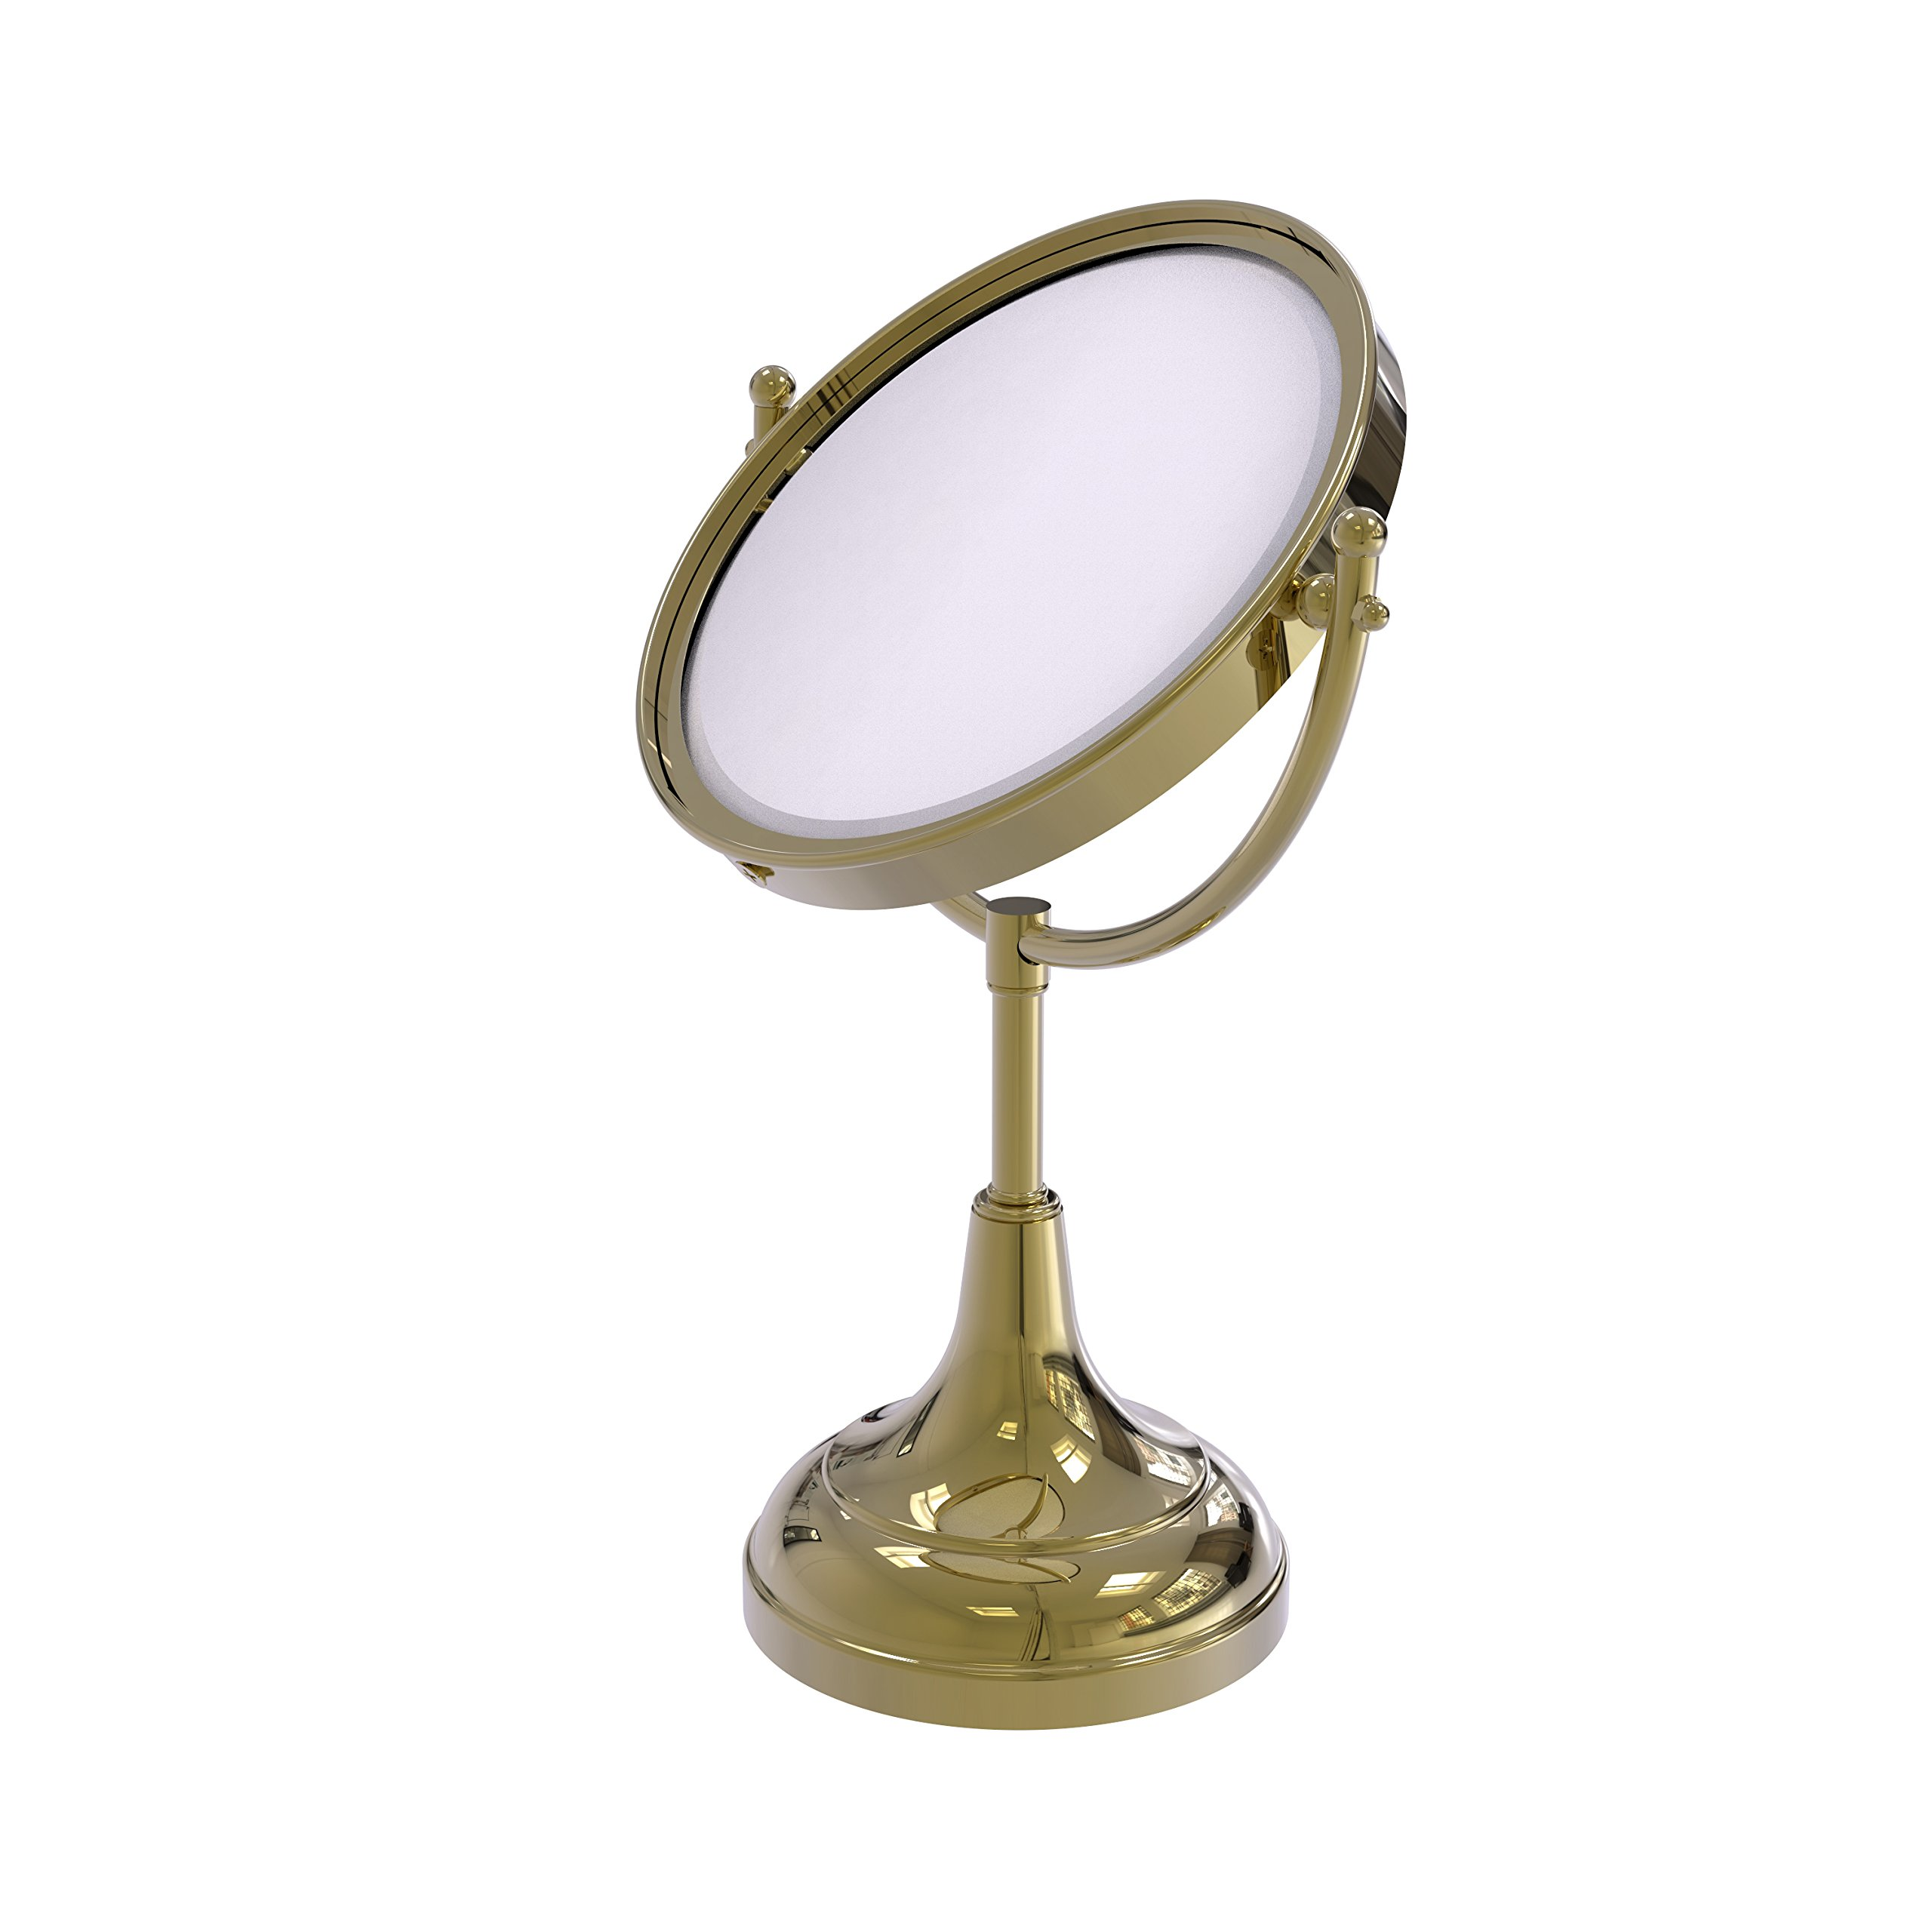 Allied Brass 8 Inch Vanity Top Make-Up Mirror 4X Magnification DM-2/4X - Unlacquered Brass